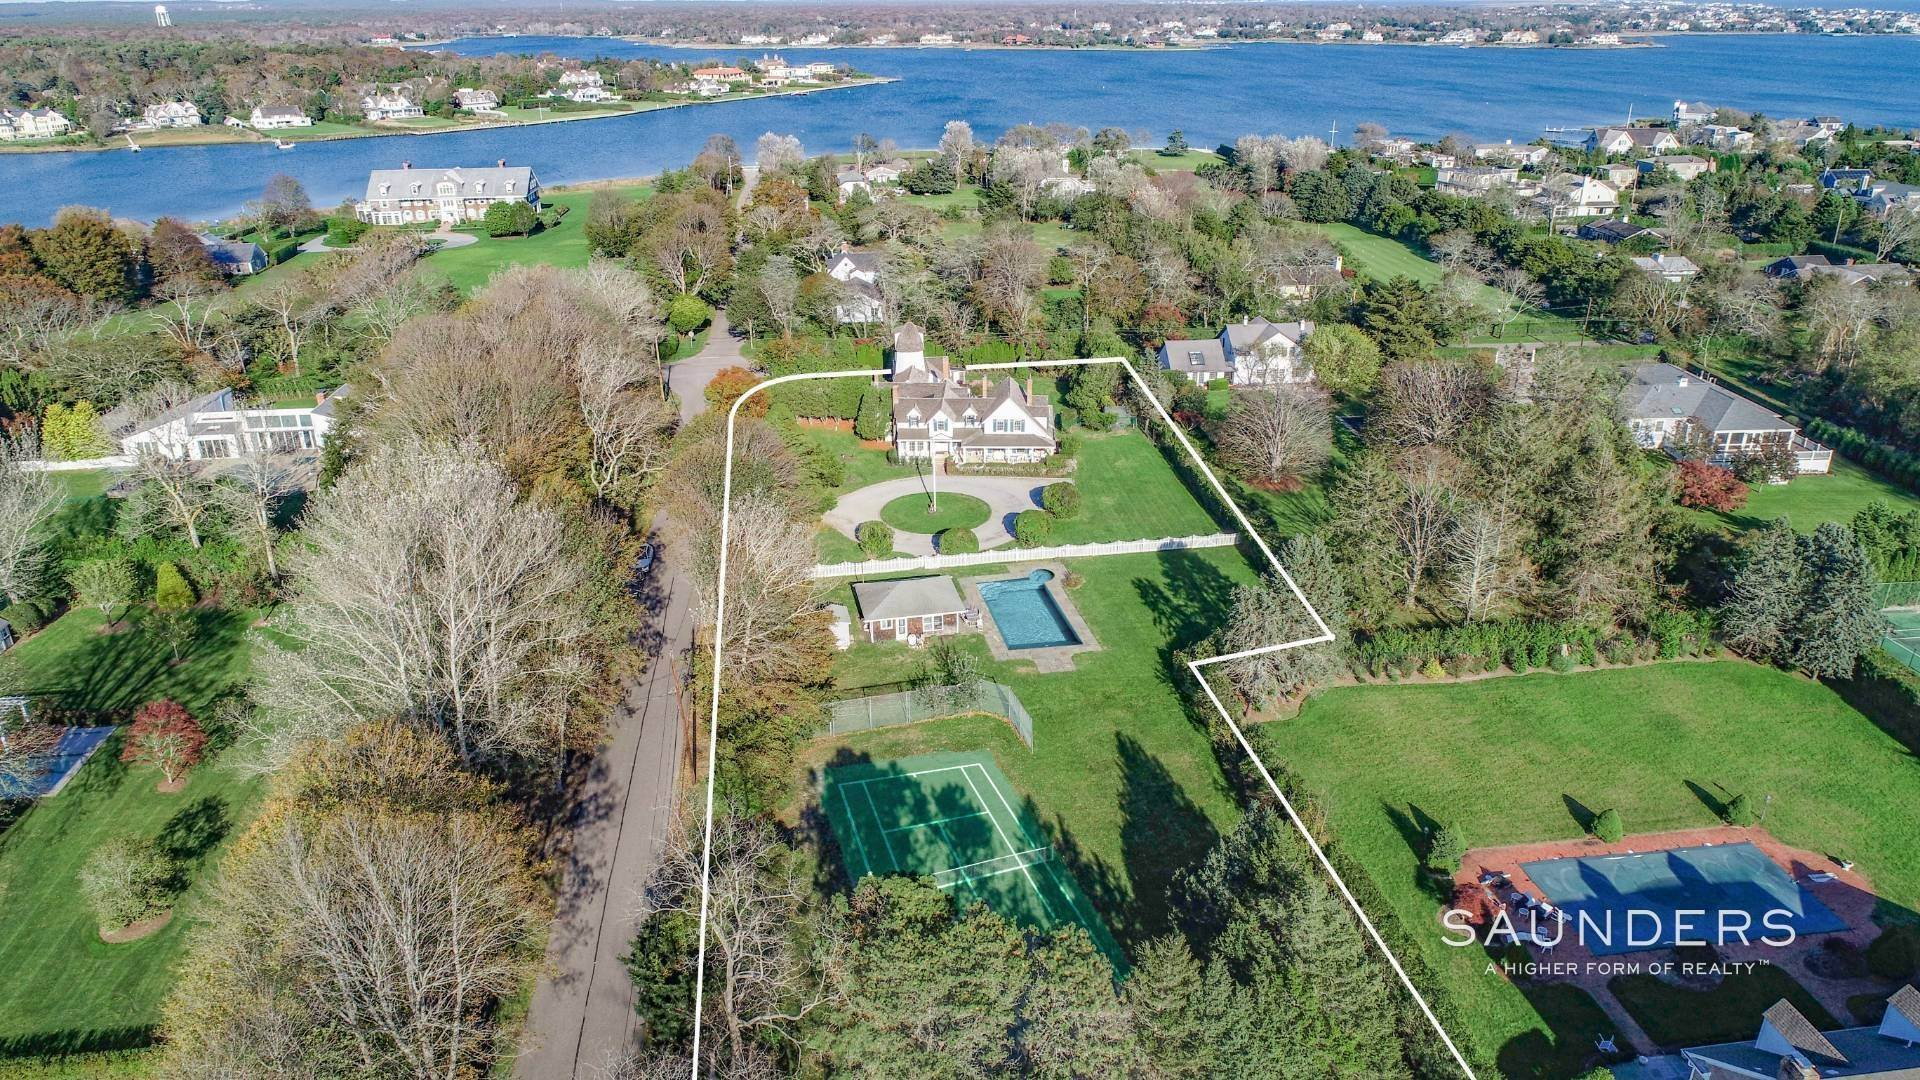 Single Family Homes for Sale at Westhampton Village Grand Dame With Pool, Tennis & Pool House 15 Sunswyck Lane, Westhampton Beach Village, Southampton Town, NY 11978